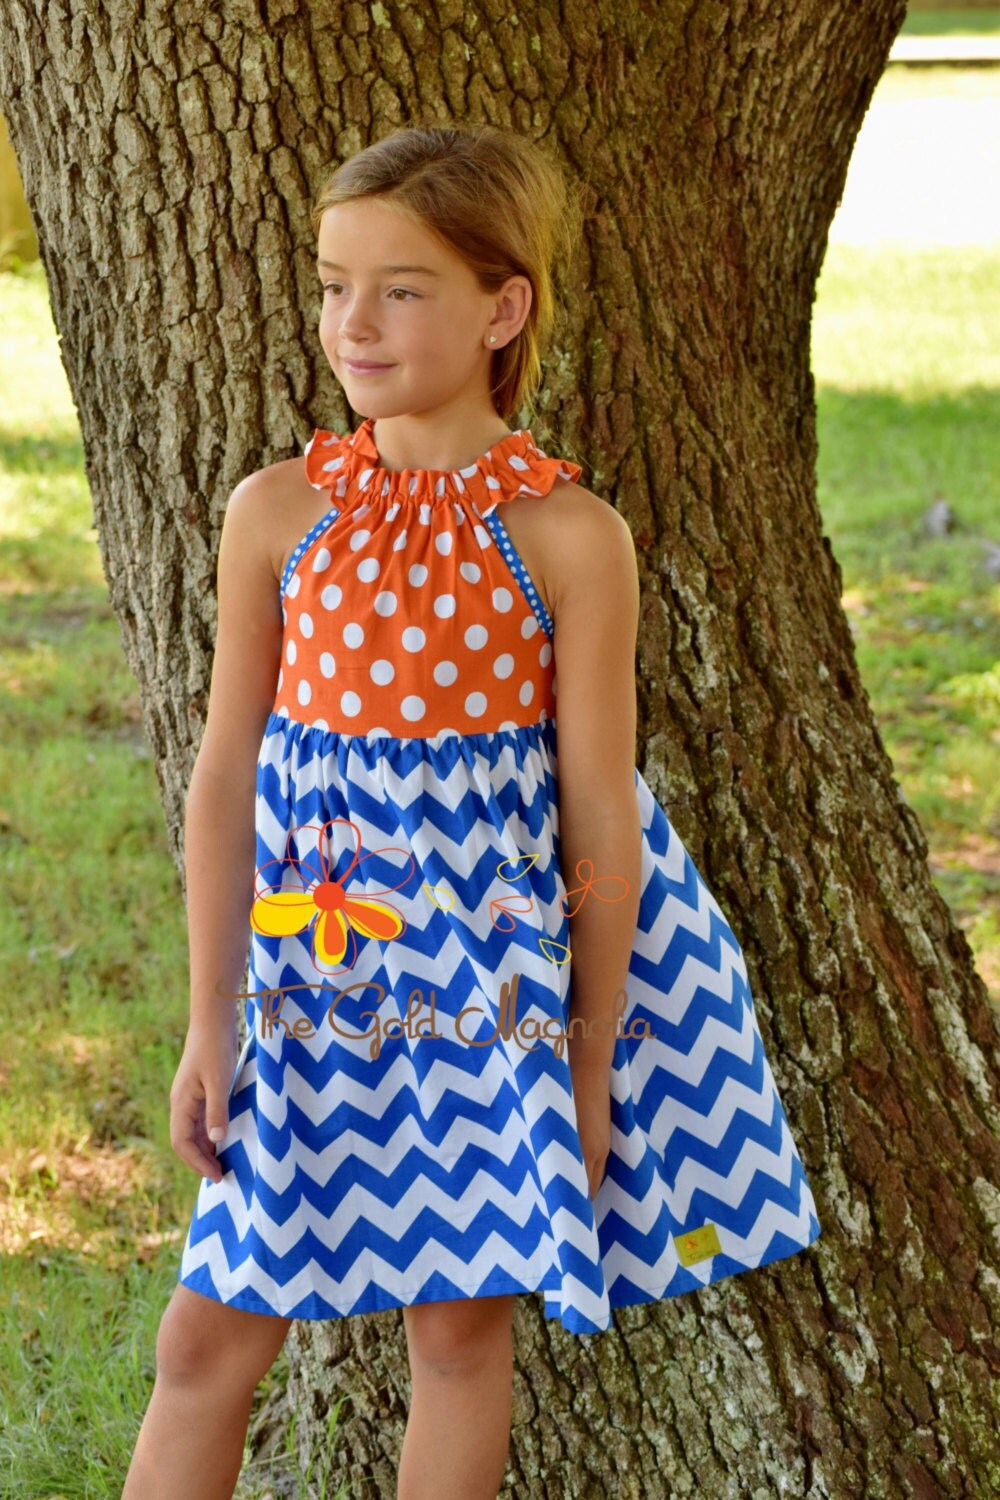 University of auburn colored dresses